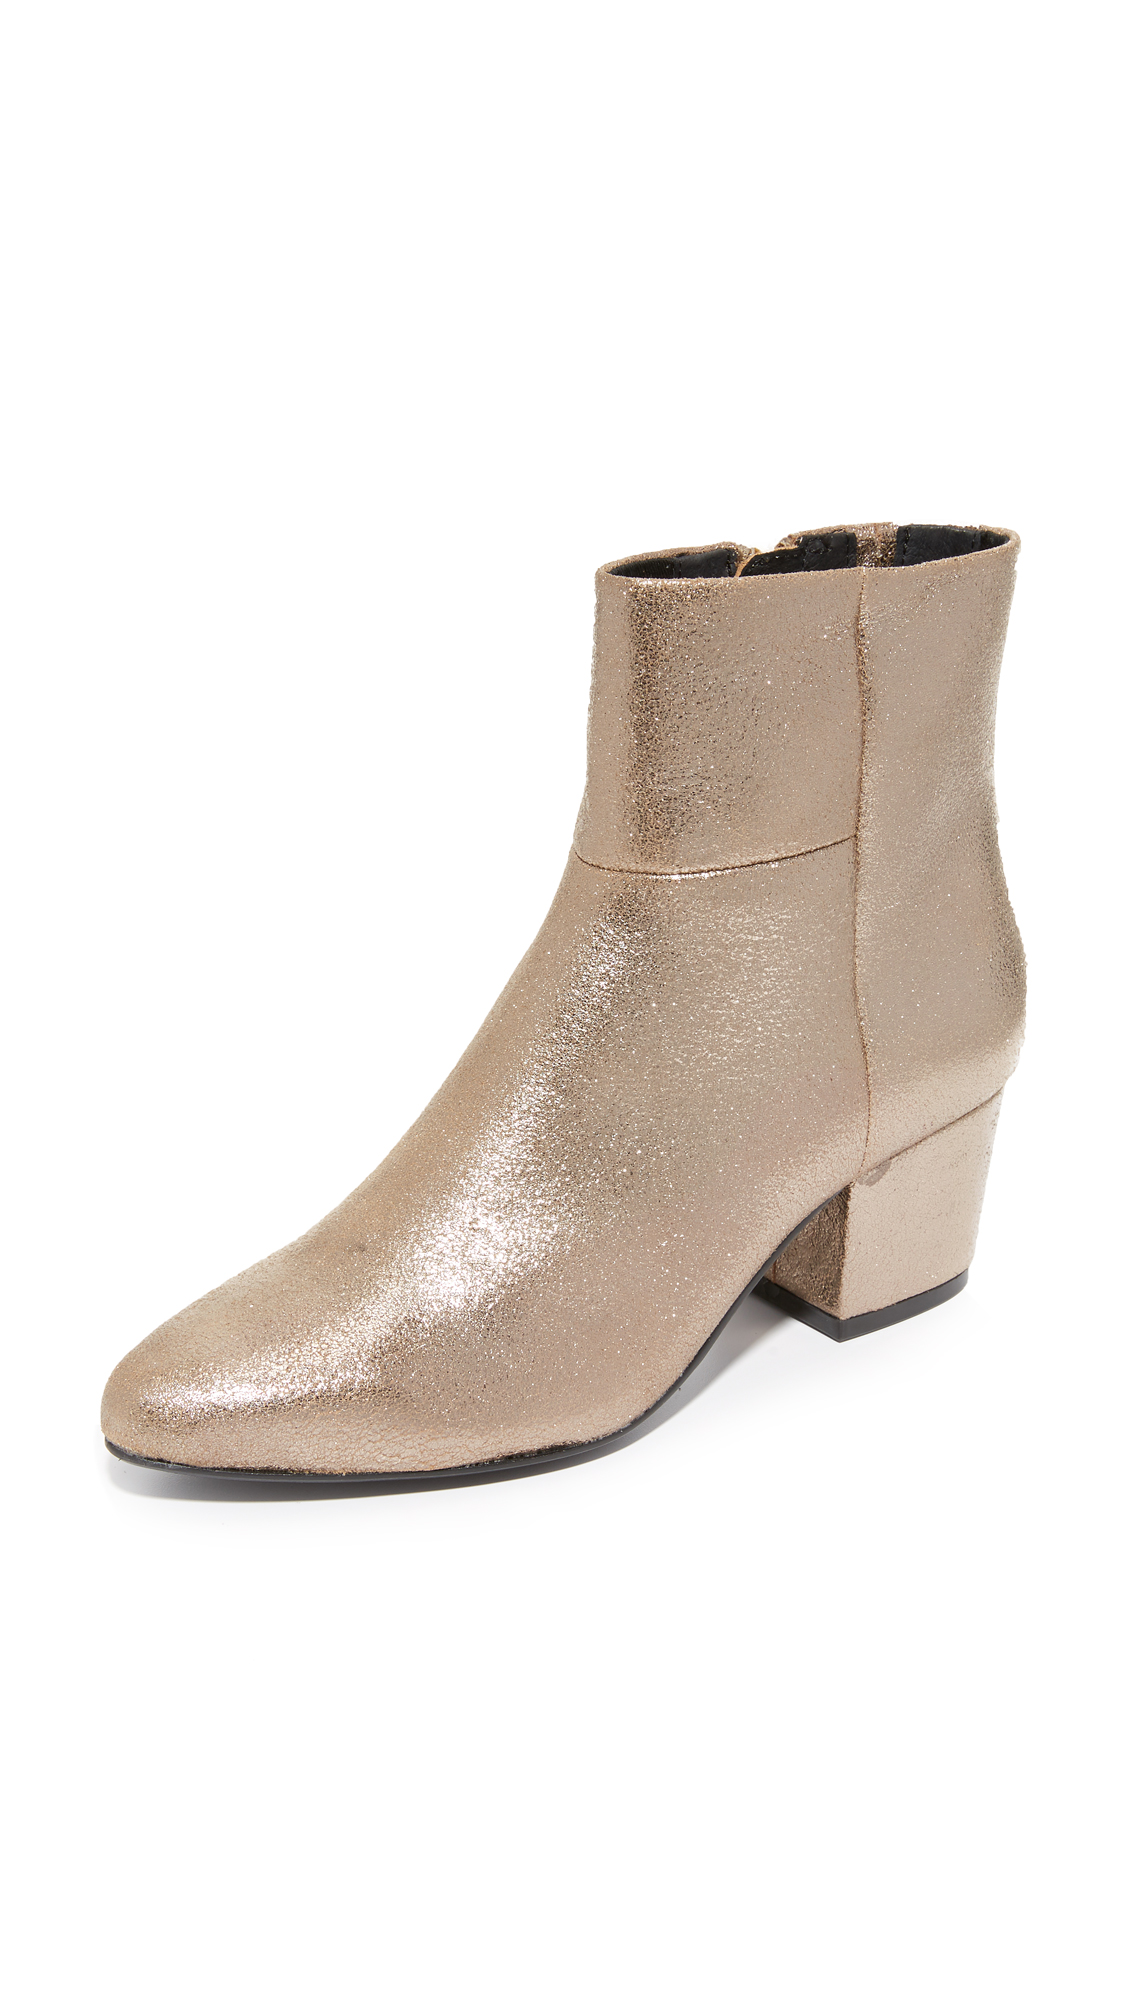 Steven Wes Booties - Silver